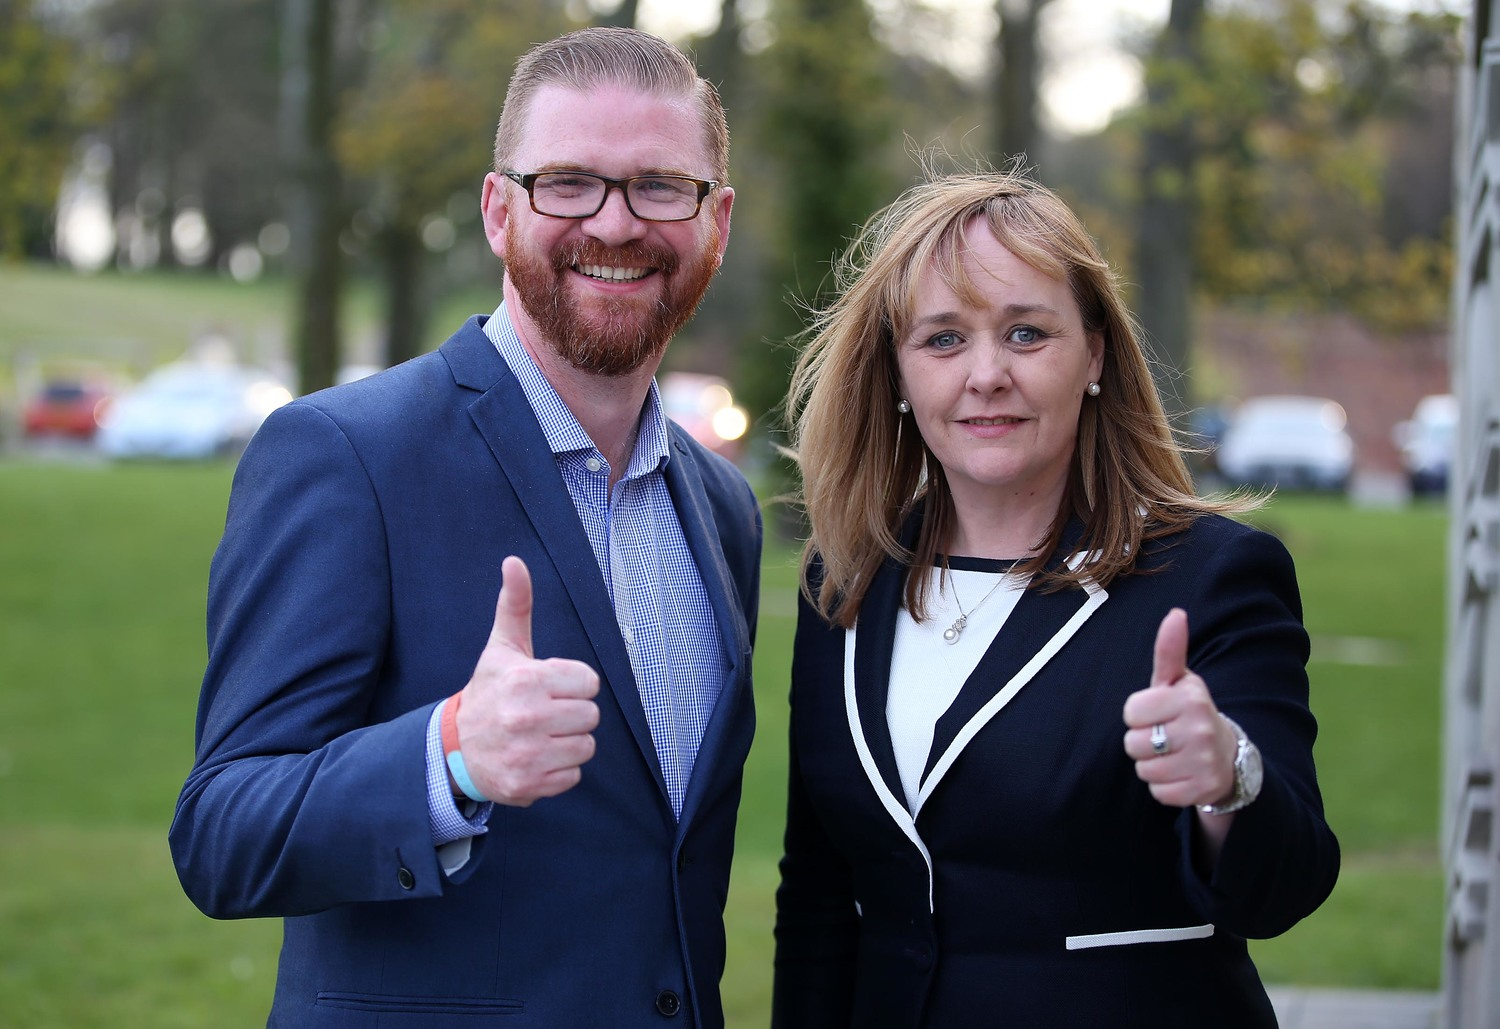 The DUP's Simon Hamilton and Michelle McIlveen pictured when they were re-elected to their Strangford constituency